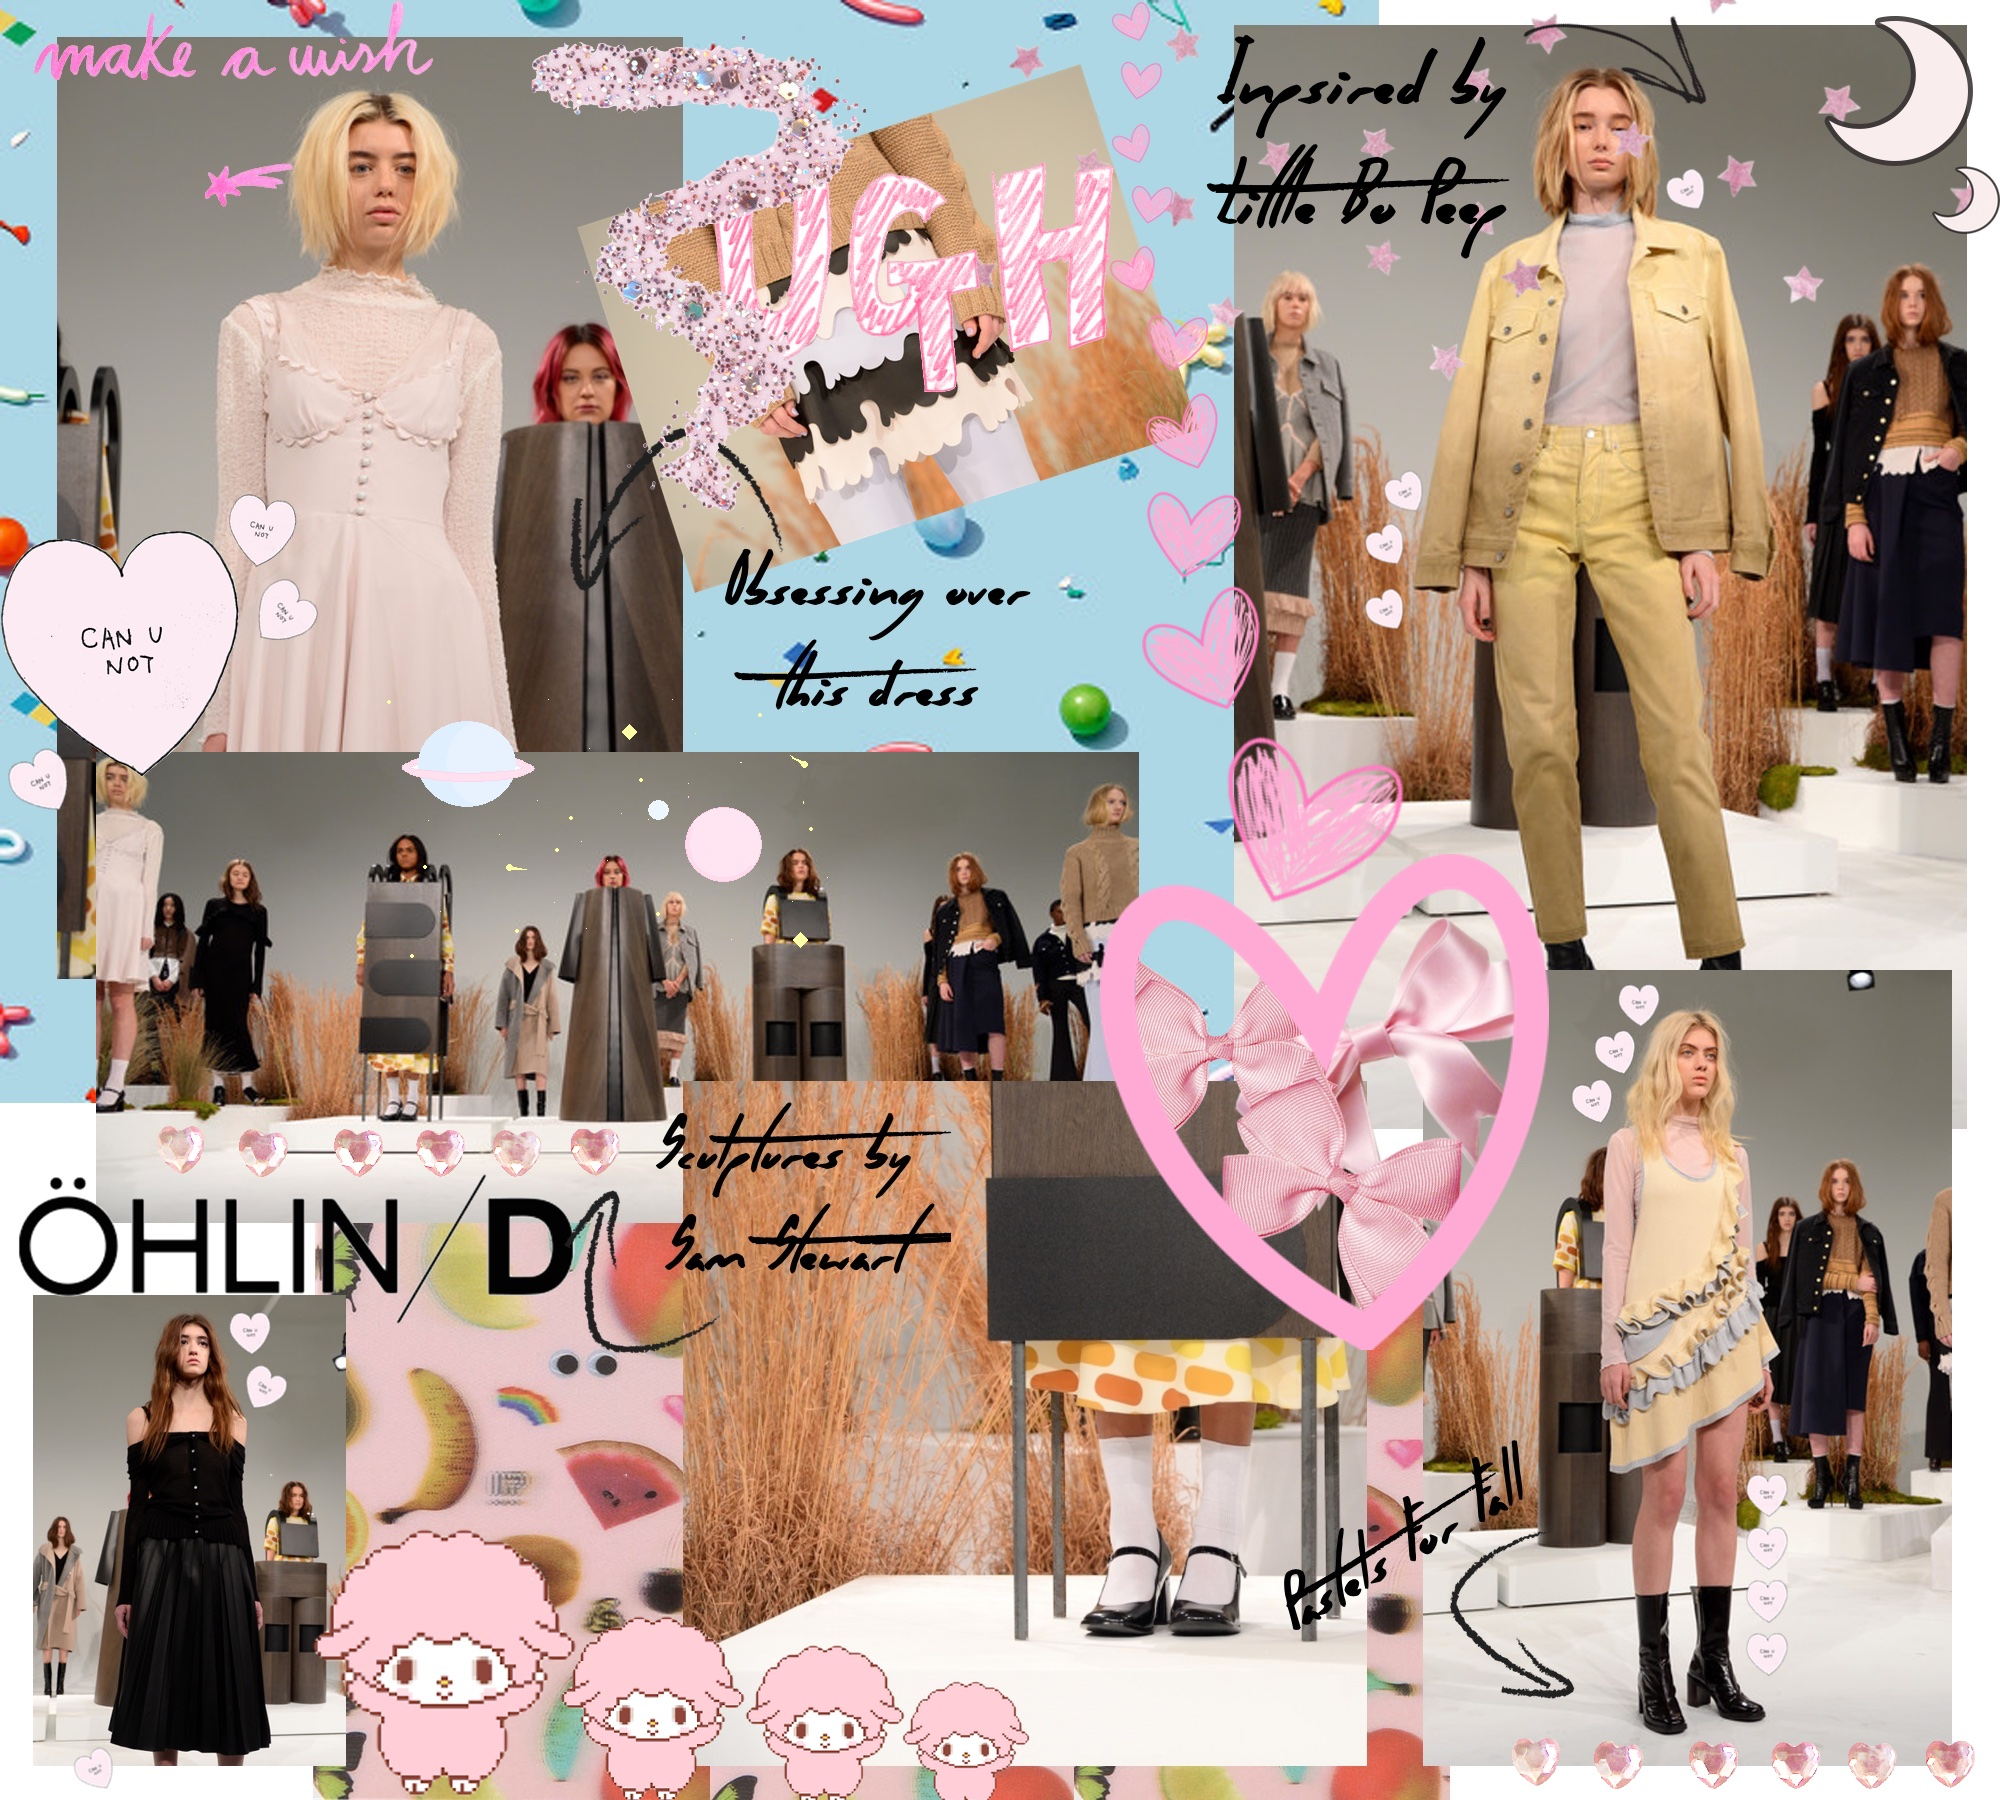 Ohlin/D FW16 Presentation New York Fashion Week 2016: To Style, With Love